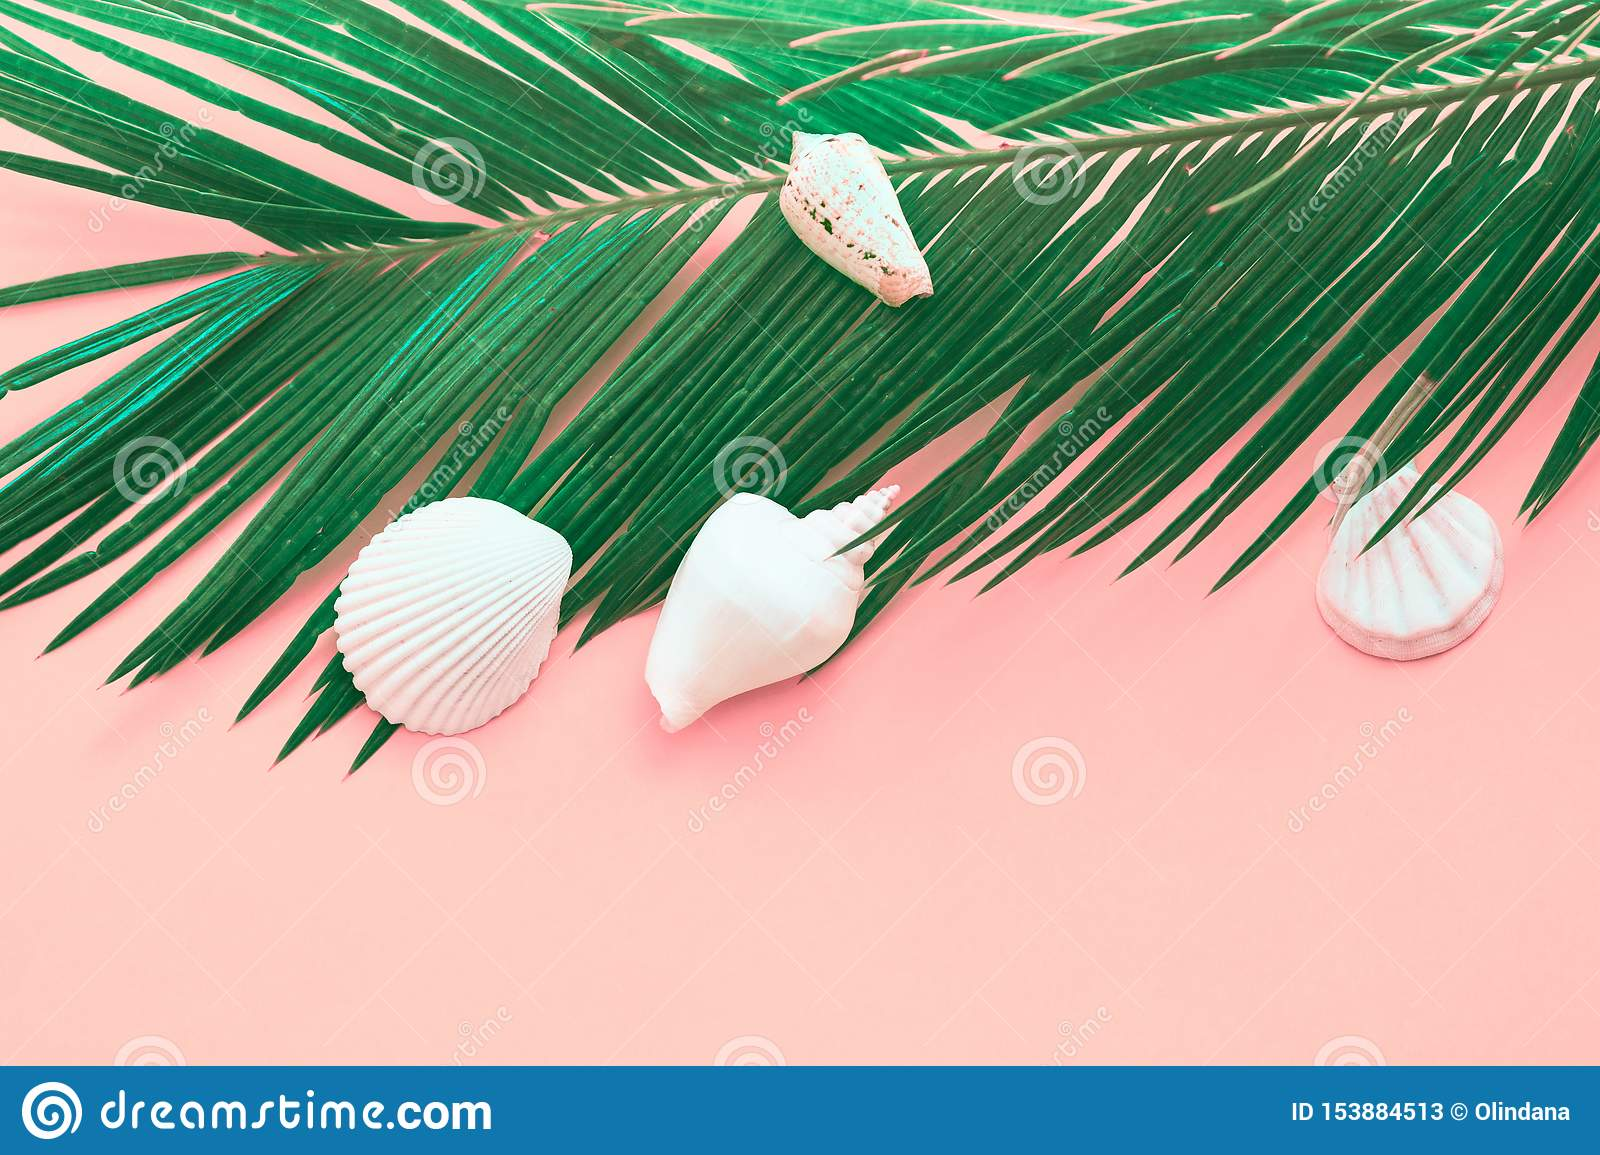 Feathery green palm leaf white sea shells on pink background. Summer tropical nautical creative concept. Poster banner for spa